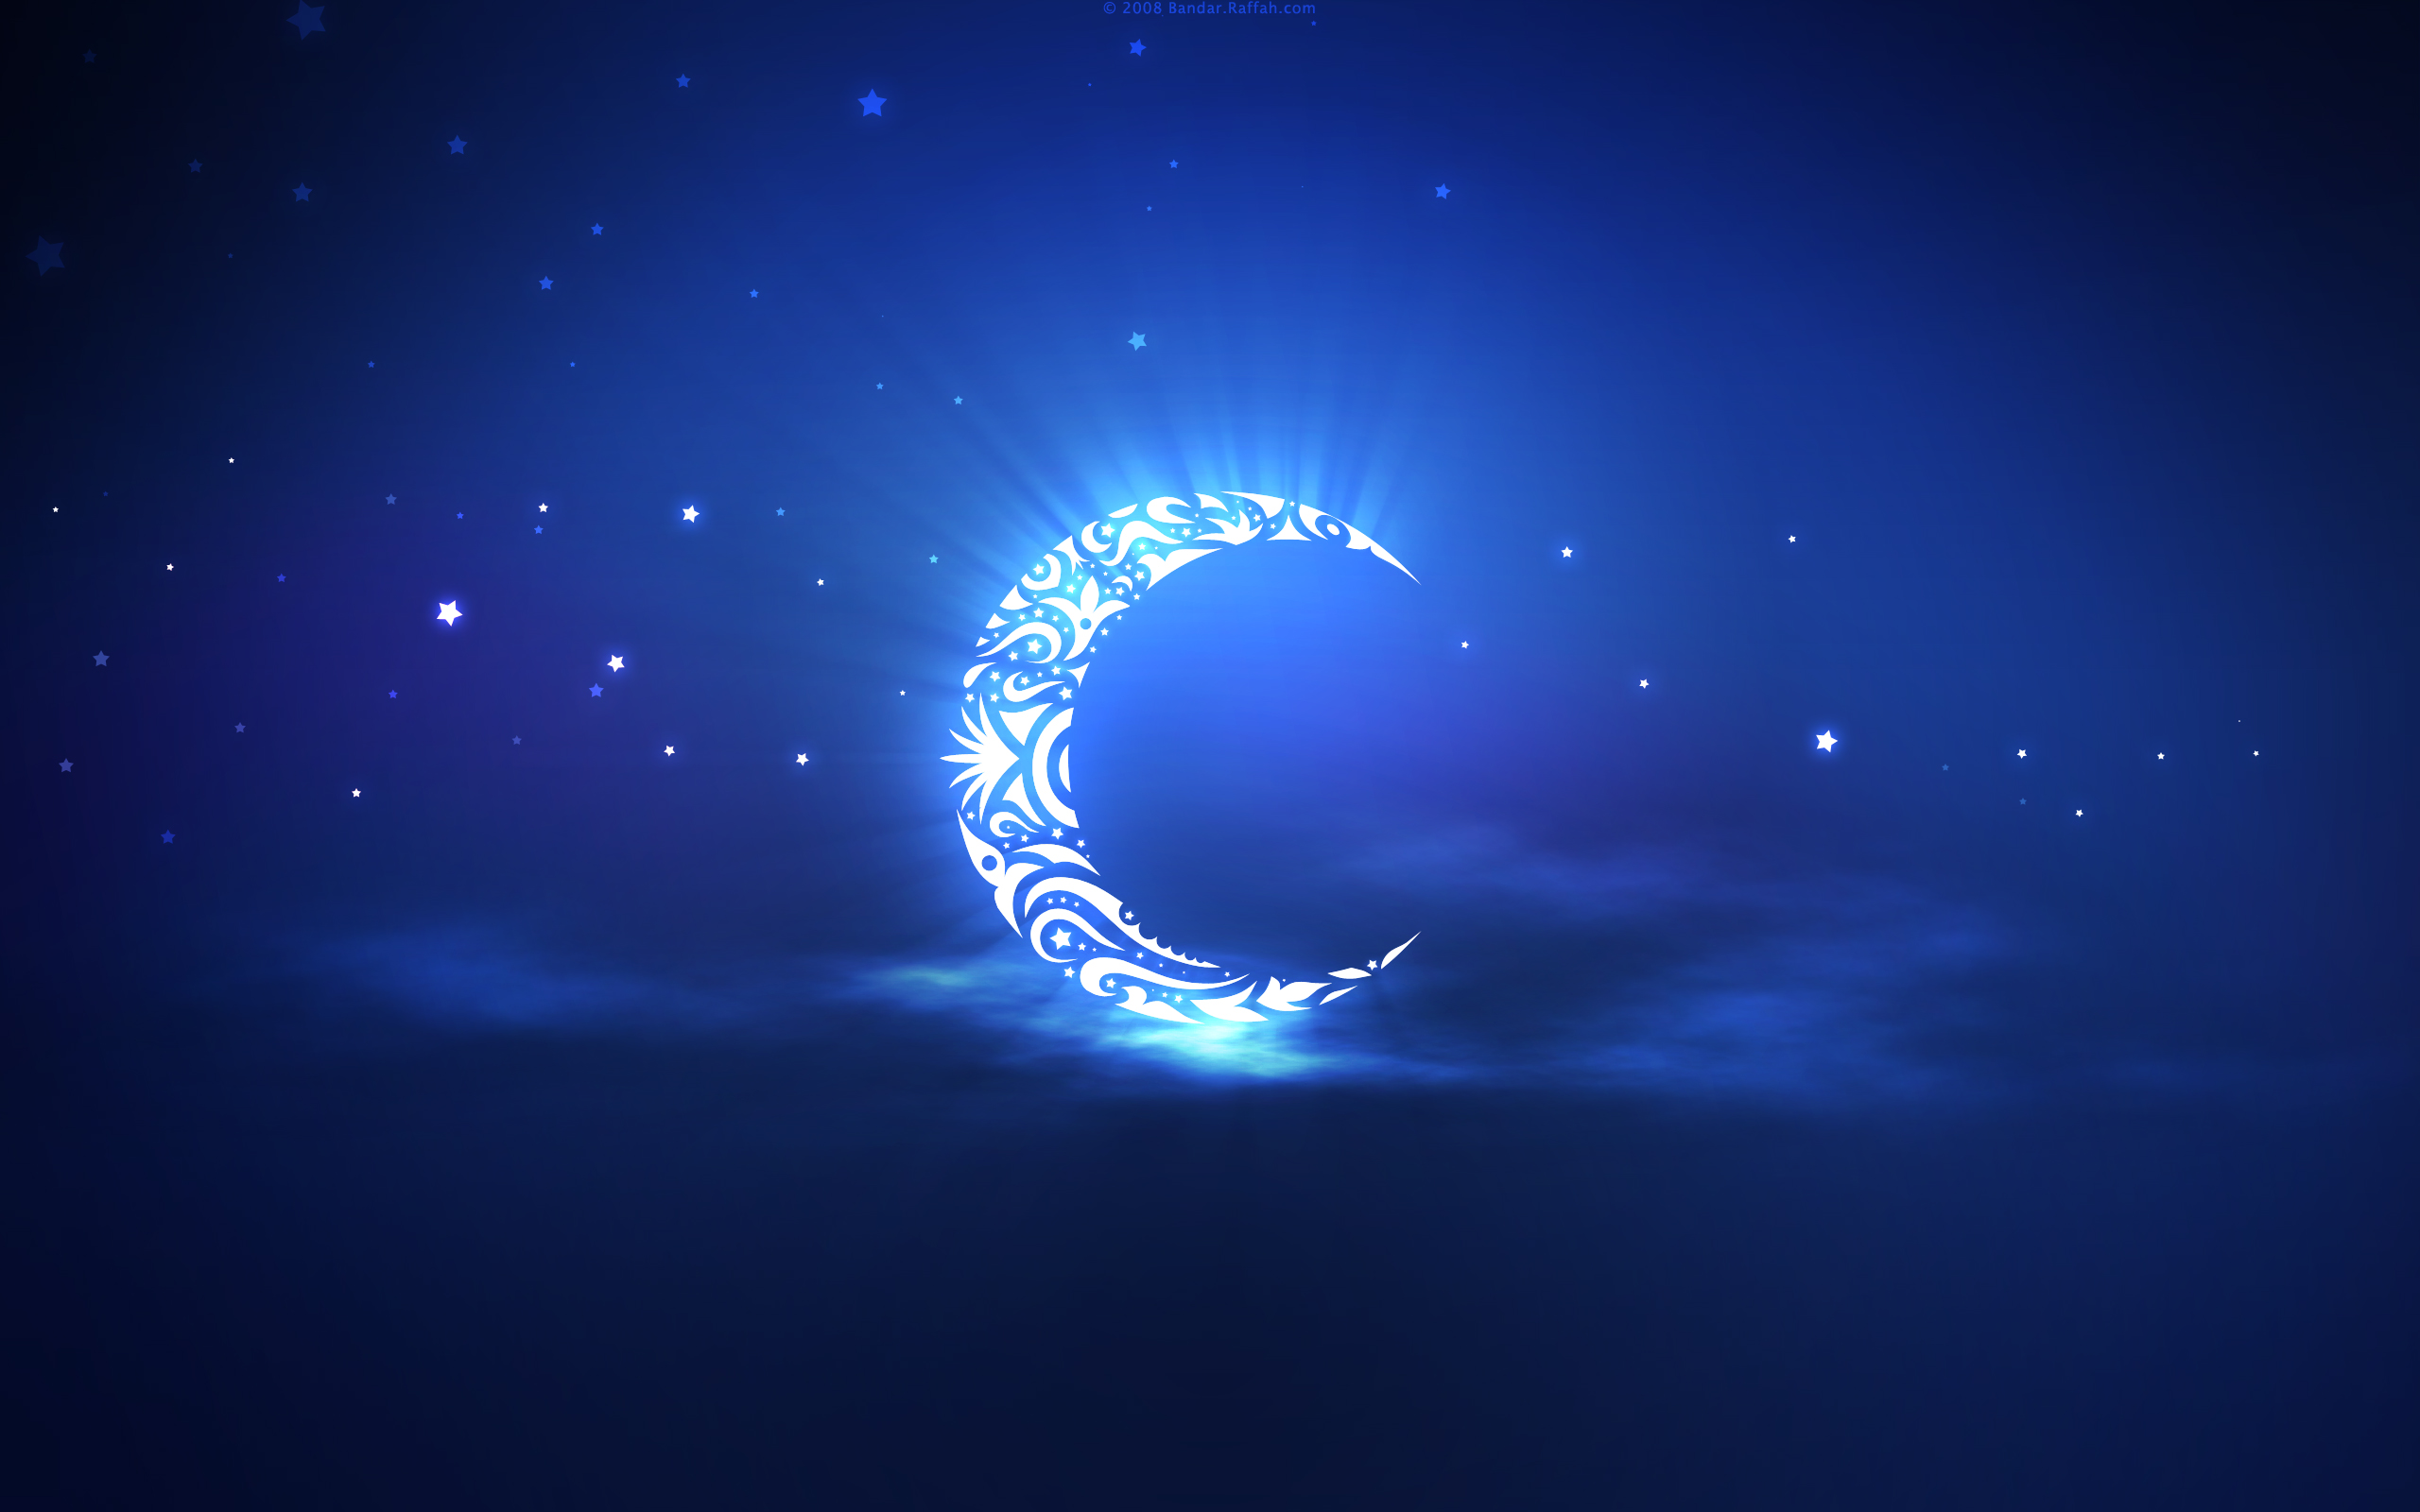 #39365004 Muslim Wallpaper for PC, Mobile